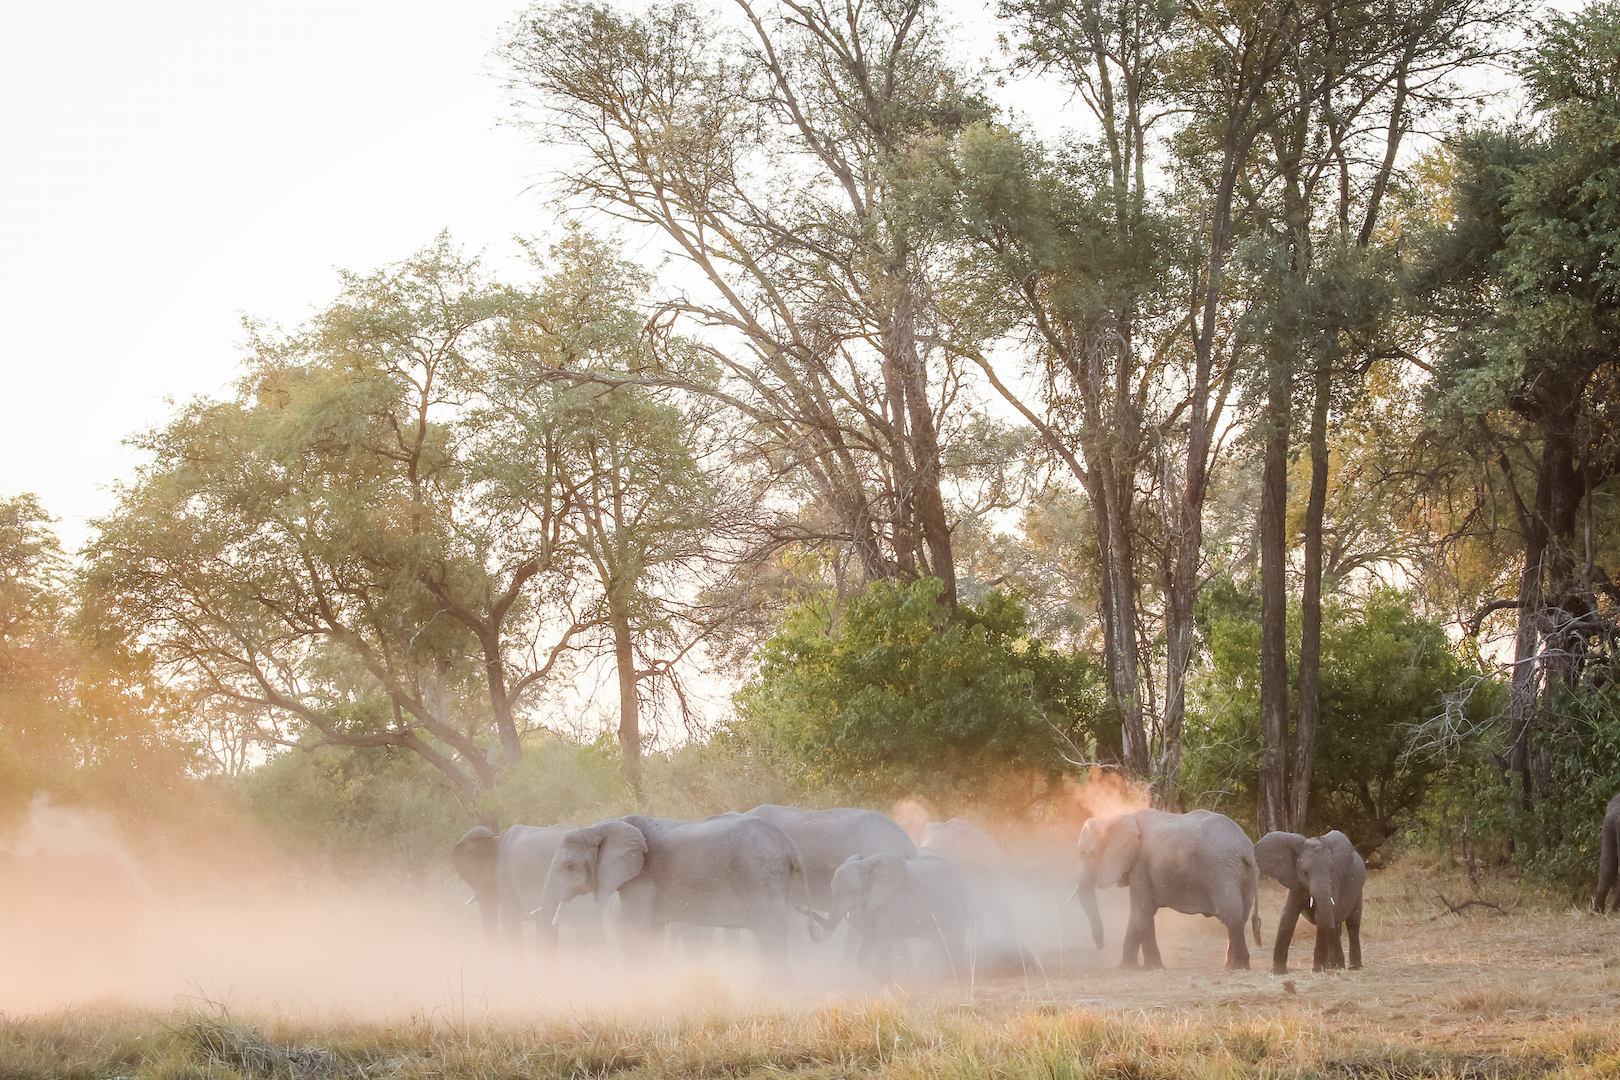 Elephants in Moremi (credit Rachel Lang)